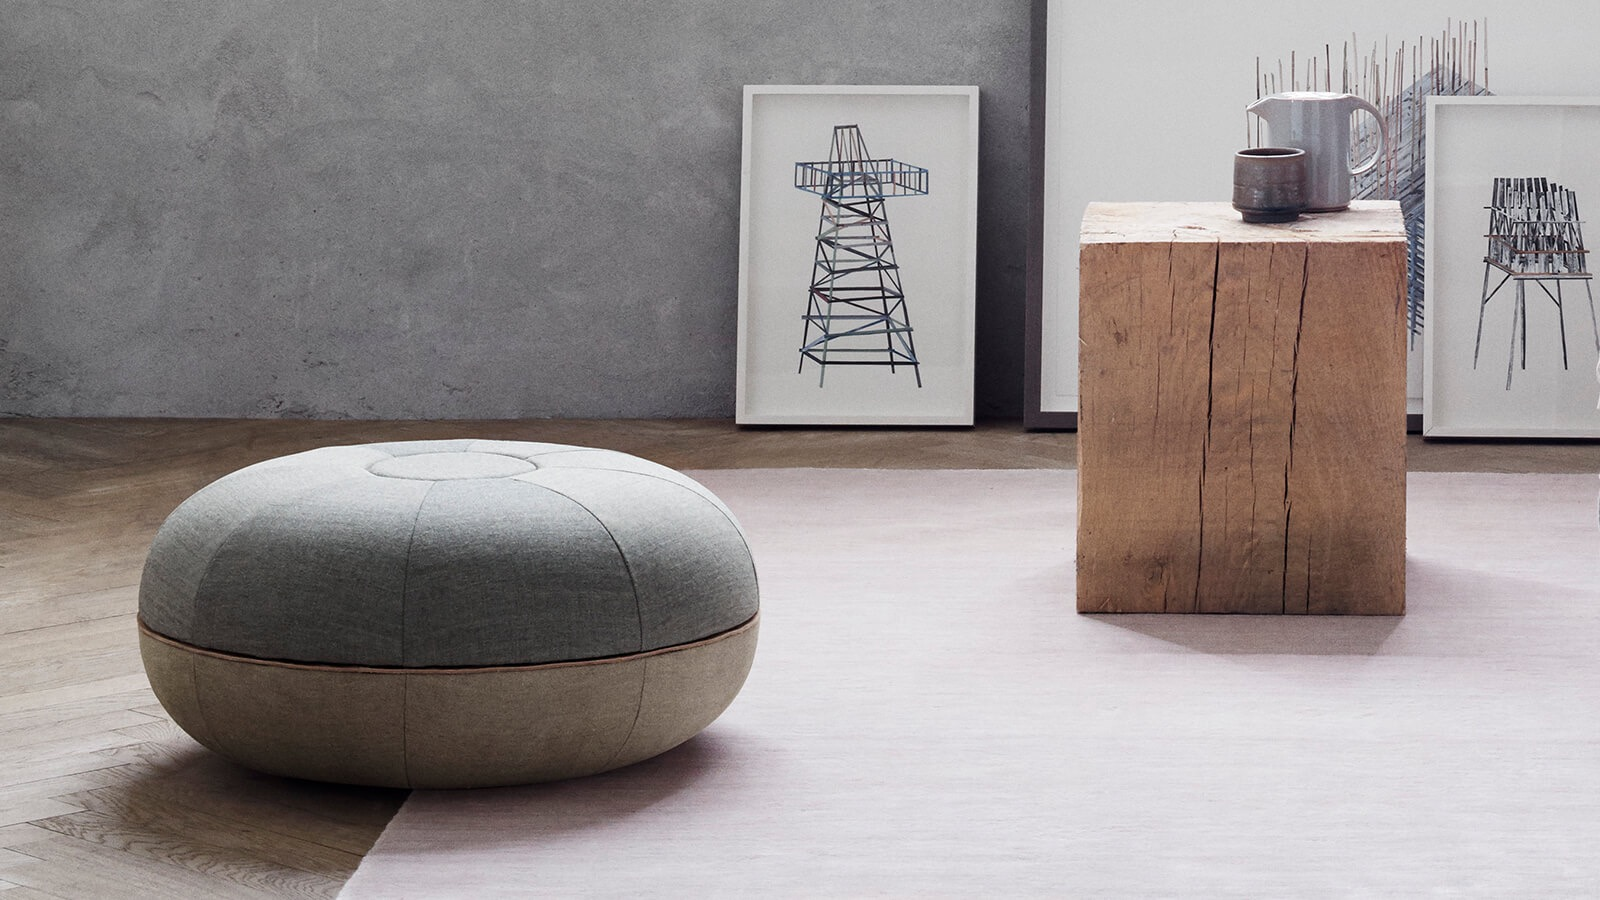 Manz's new 'Pouf' design for Fritz Hansen Objects. The design comes in indigo blue, pale pink and concrete with natural leather hide.(Poul Kjaerholm)